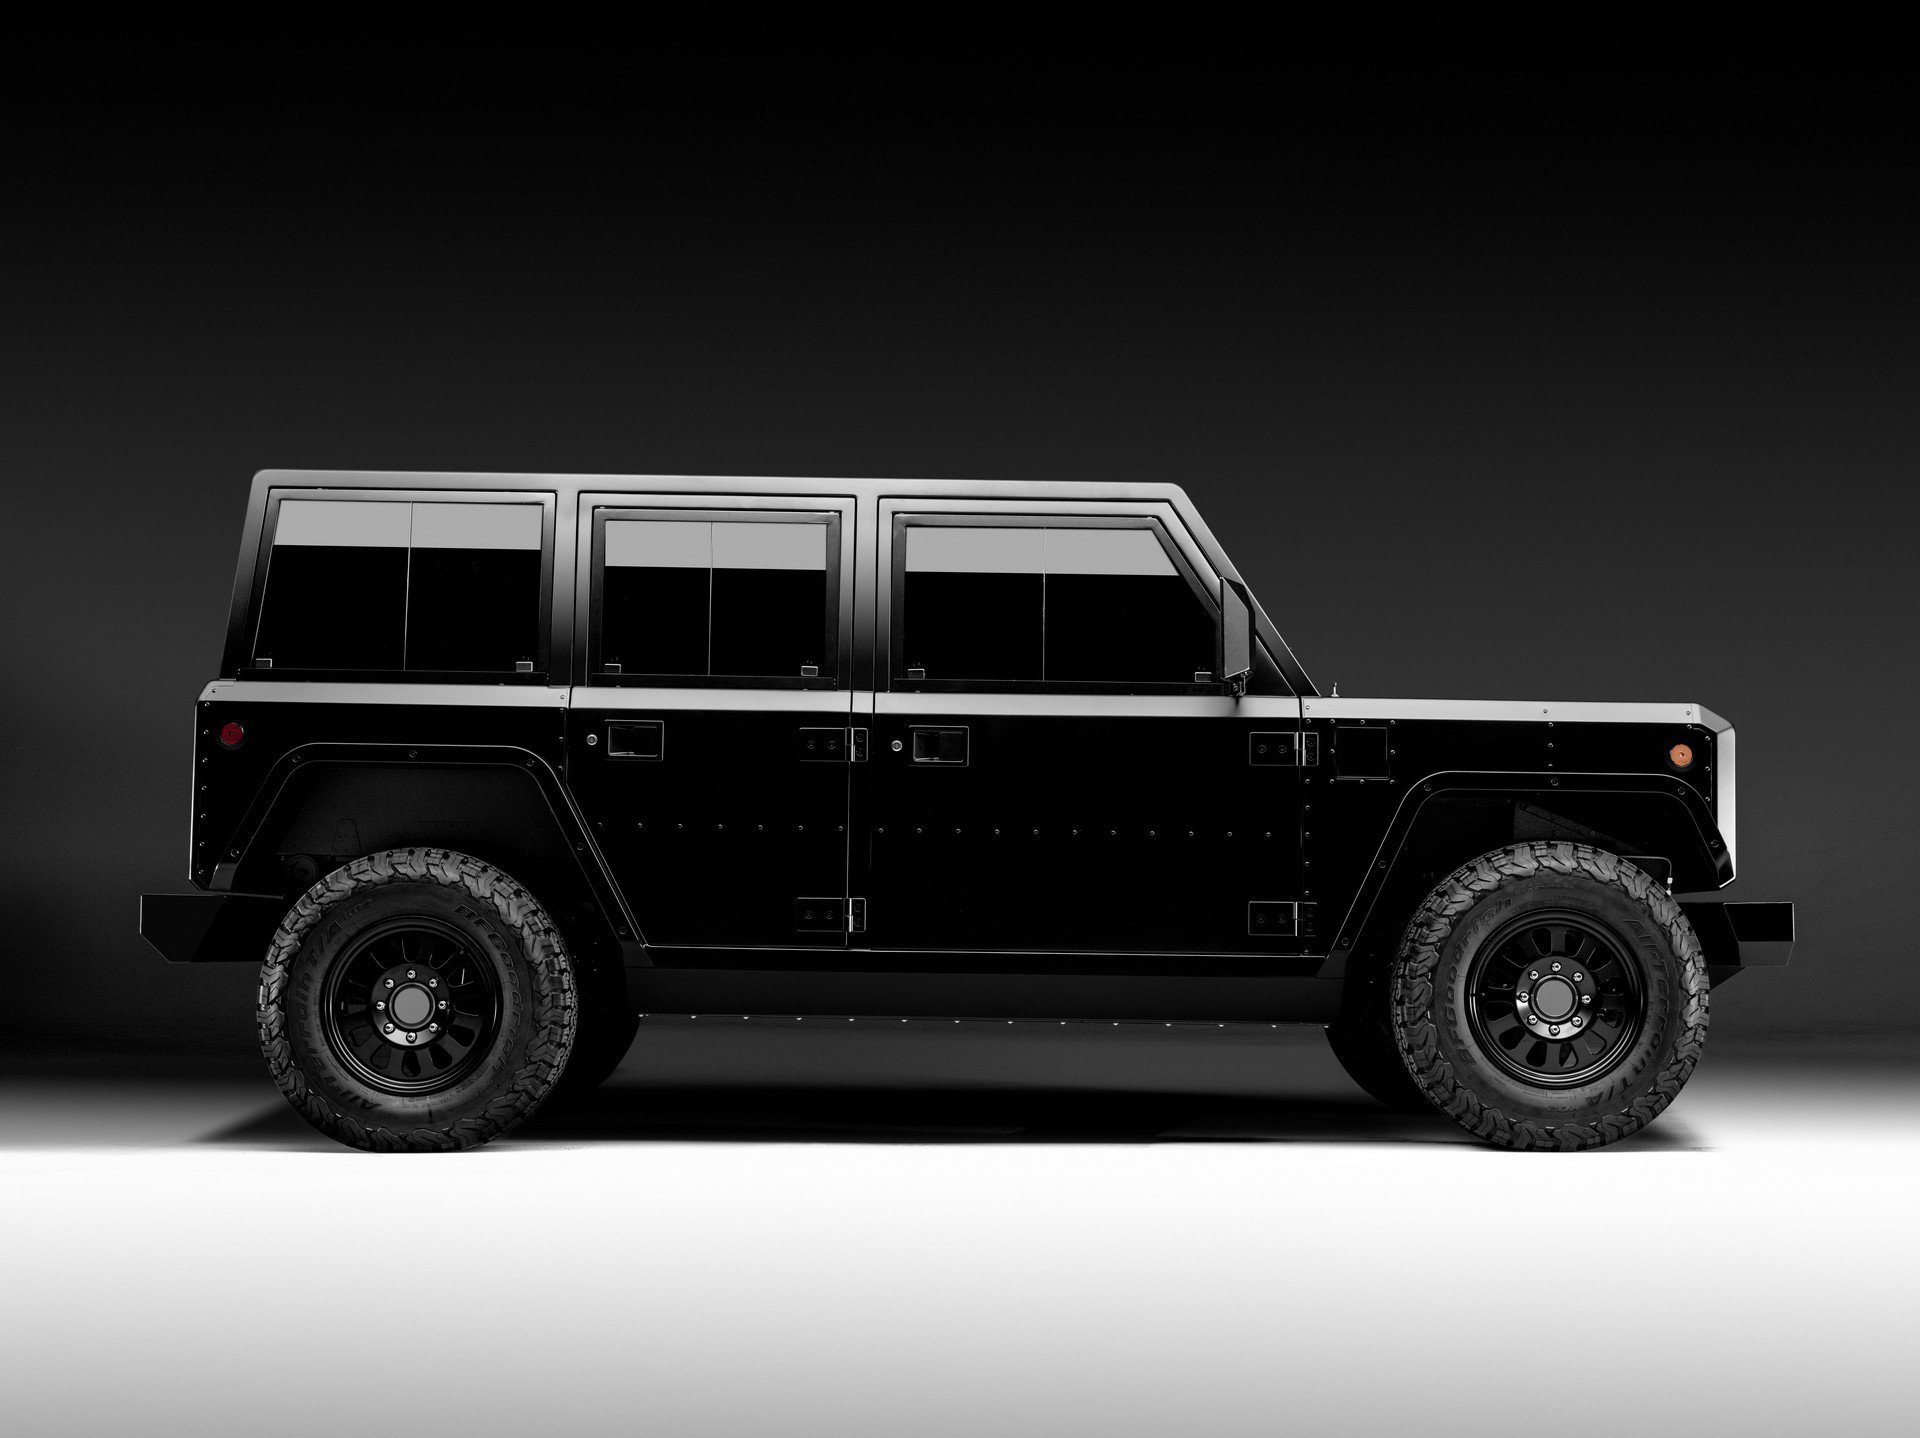 Bollinger B1 SUV and B2 pickup